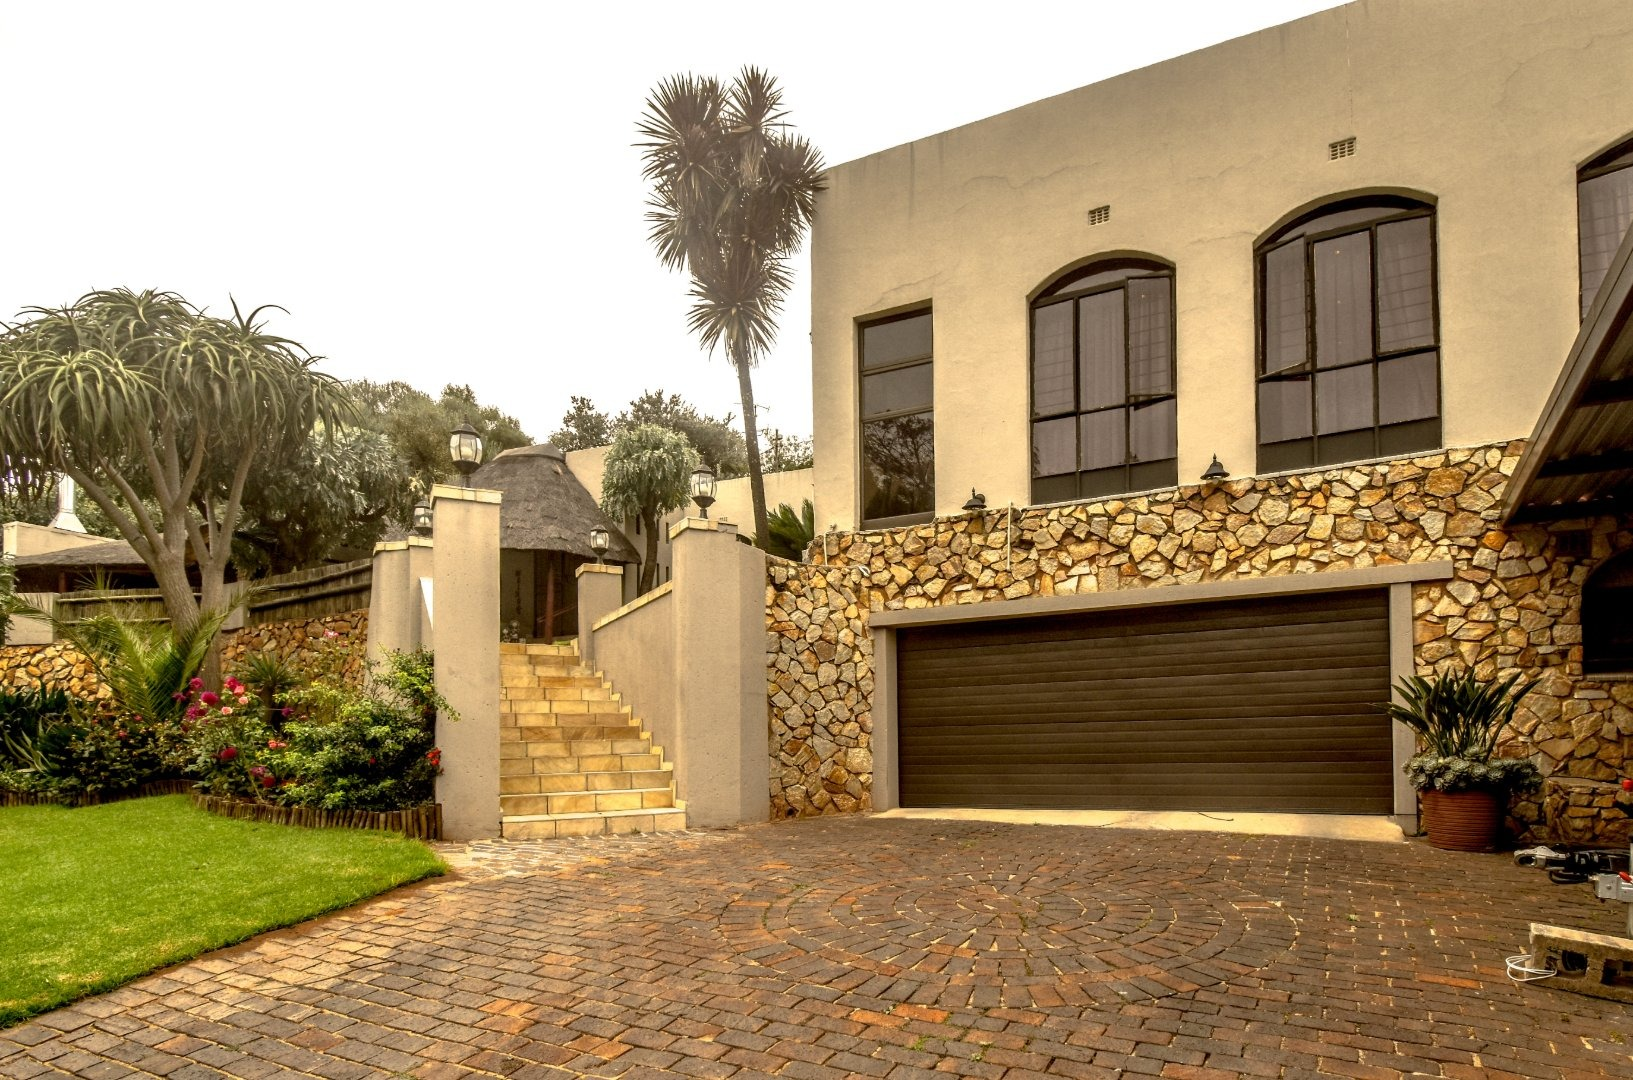 4 Bedroom House For Sale in Quellerina